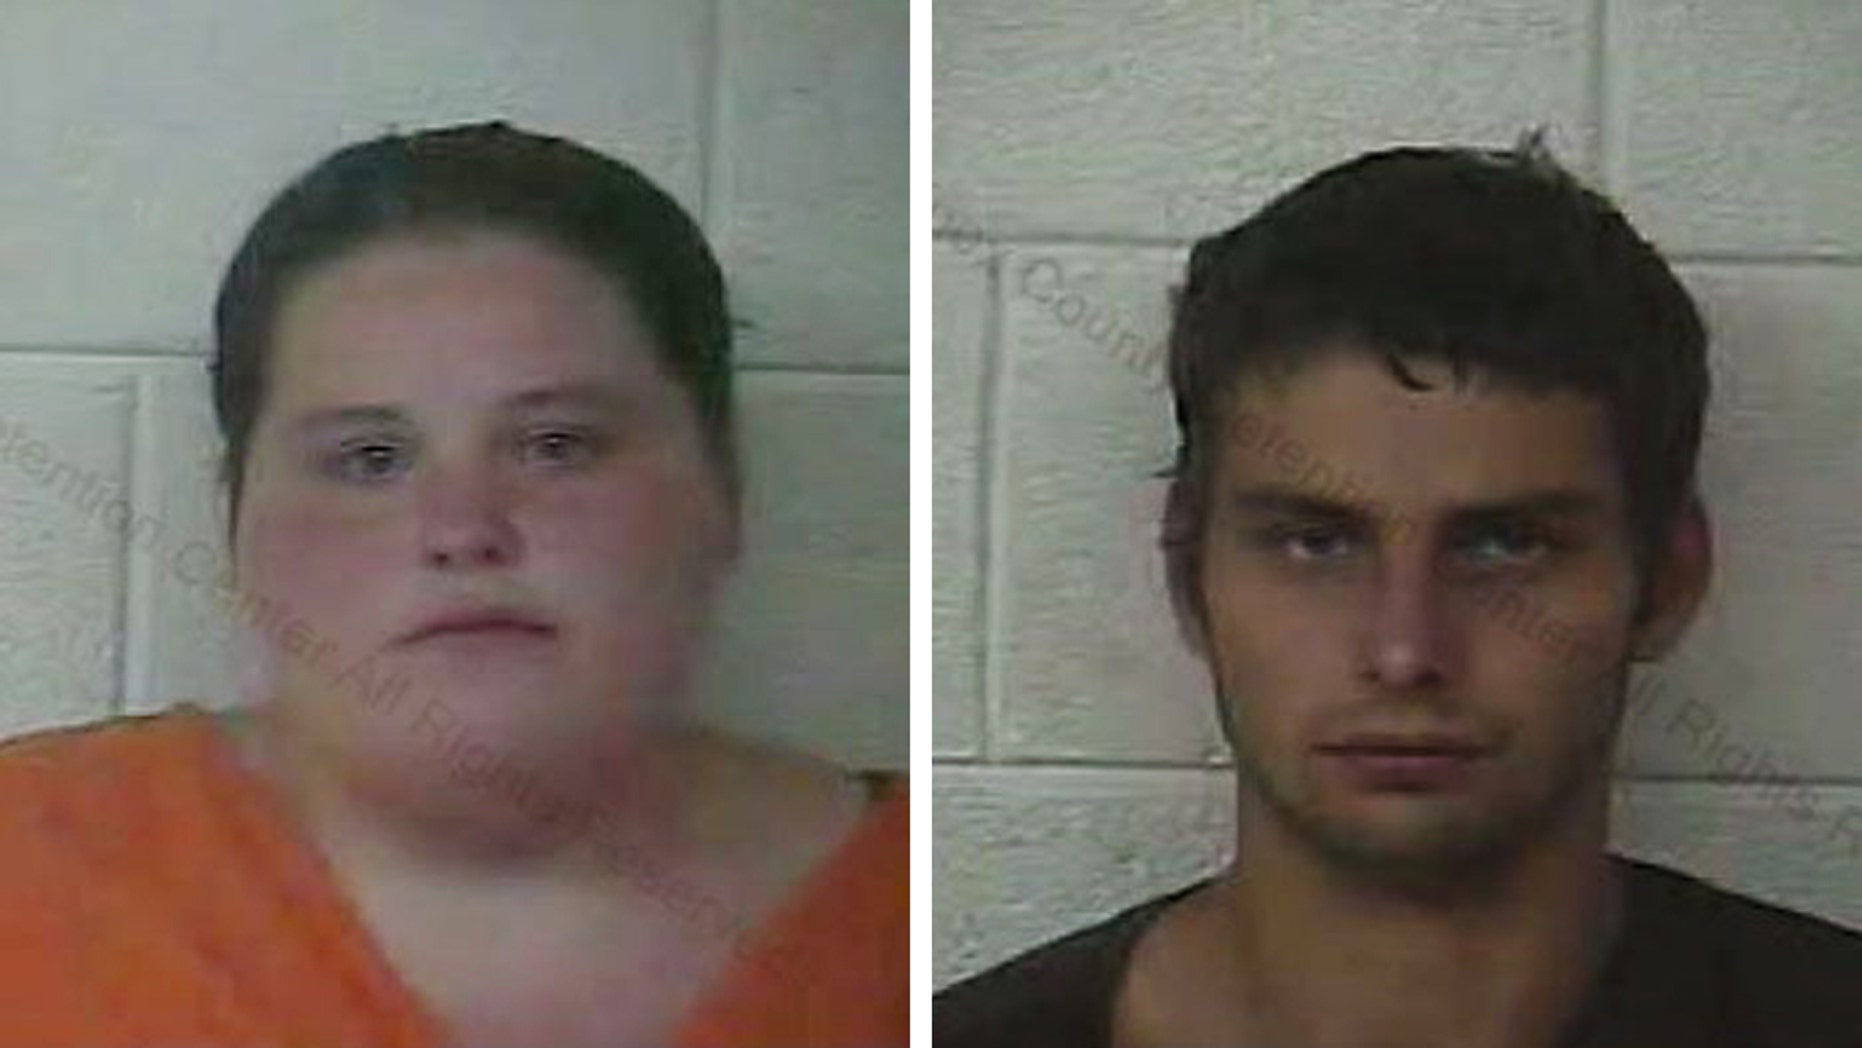 The son of 23-year-old Natasha McBee  and 23-year-old Nickalas Jorgenson told deputies and social services that they would lock him in his room for punishment from 15 to 20 minutes. (Knox County Sheriff's Office)